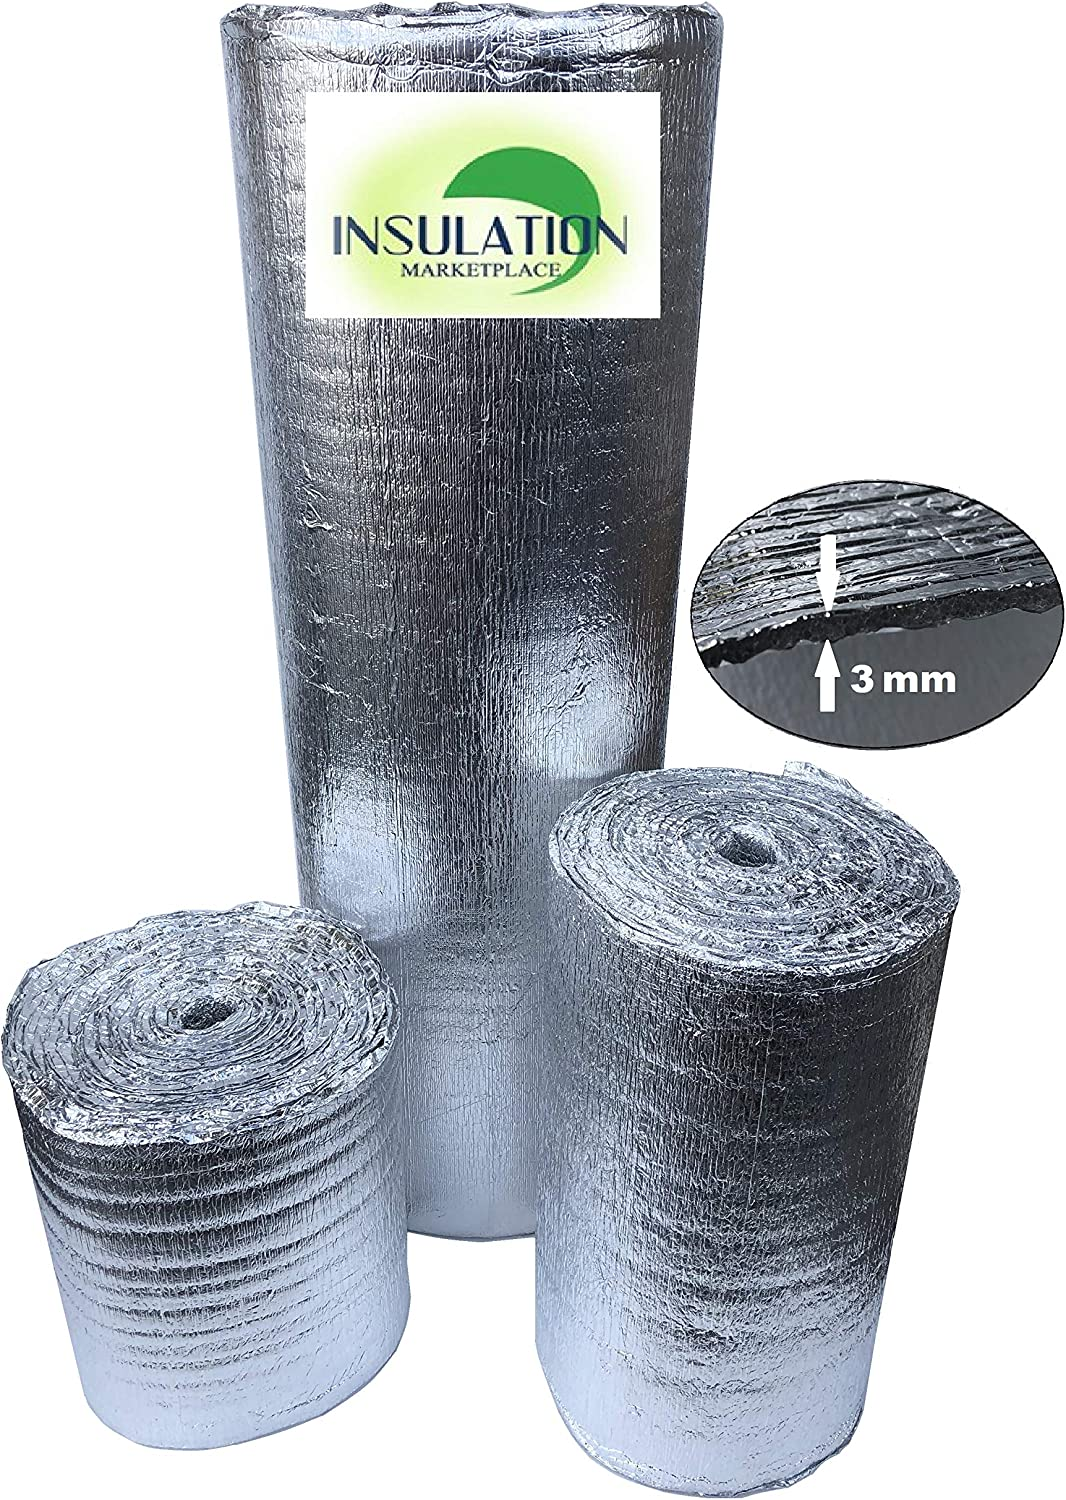 4 X 50 Ft Roll Double Bubble Reflective Foil Radiant Barrier Insulation: